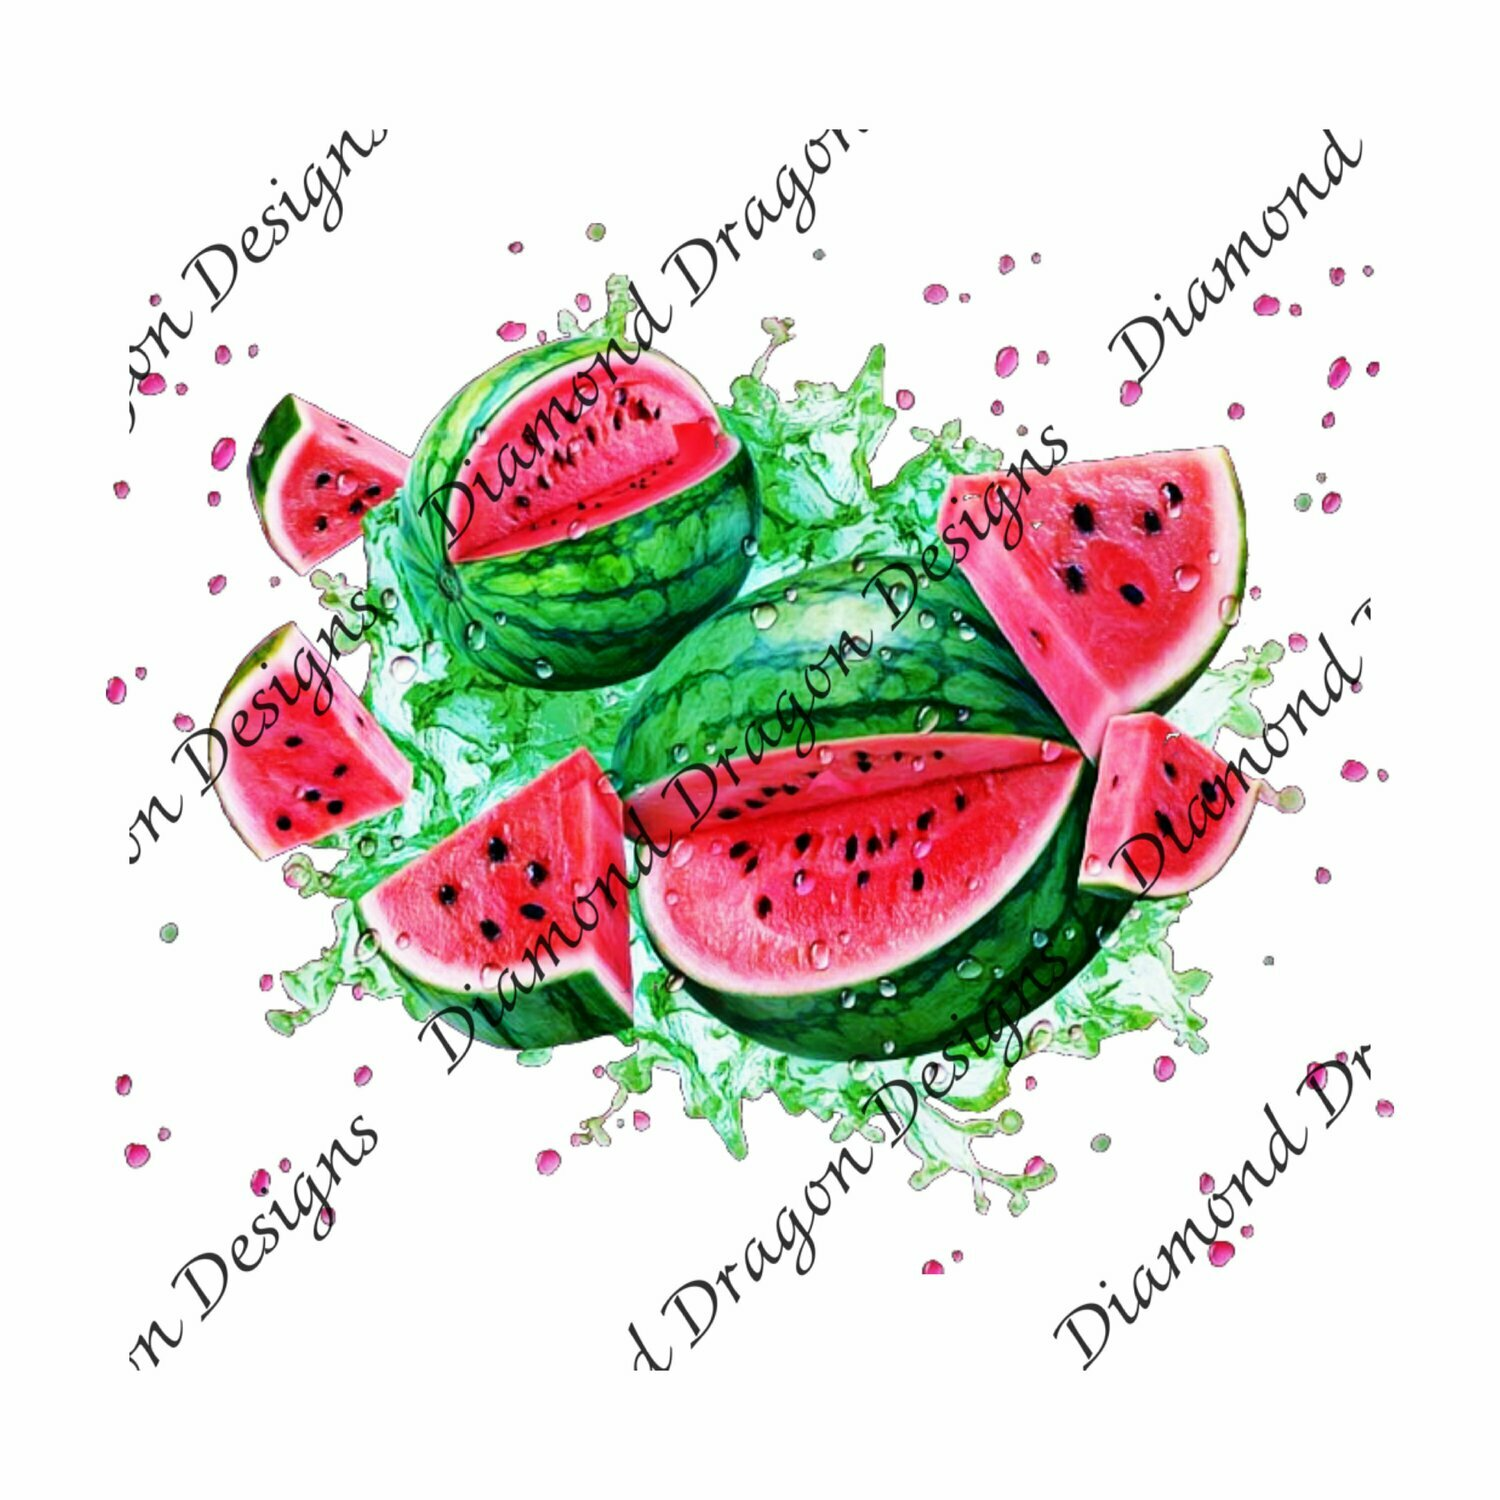 Watermelon - Summer, Summer time, Watermelon Watercolor, Waterslide